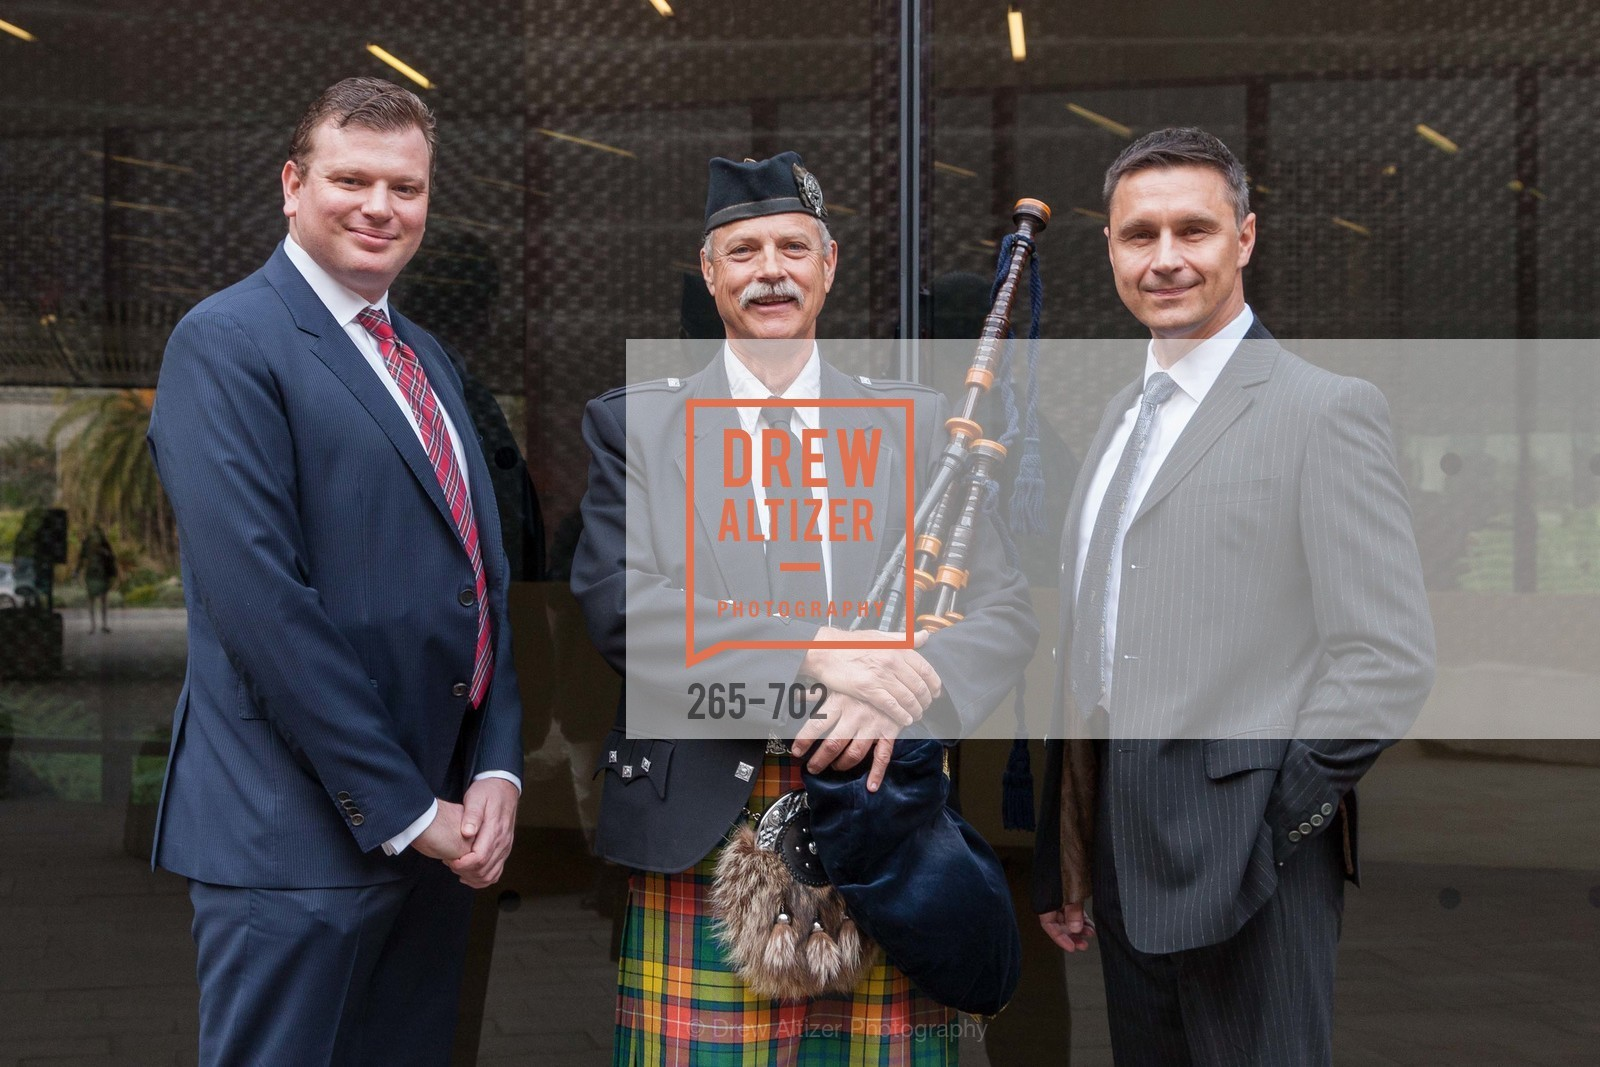 Josh Reynolds, Vadim Nebuchin, ARTPOINT:  Masterpieces from the National Galleries of Scotland and Scotch Tastings, US, May 8th, 2015,Drew Altizer, Drew Altizer Photography, full-service agency, private events, San Francisco photographer, photographer california